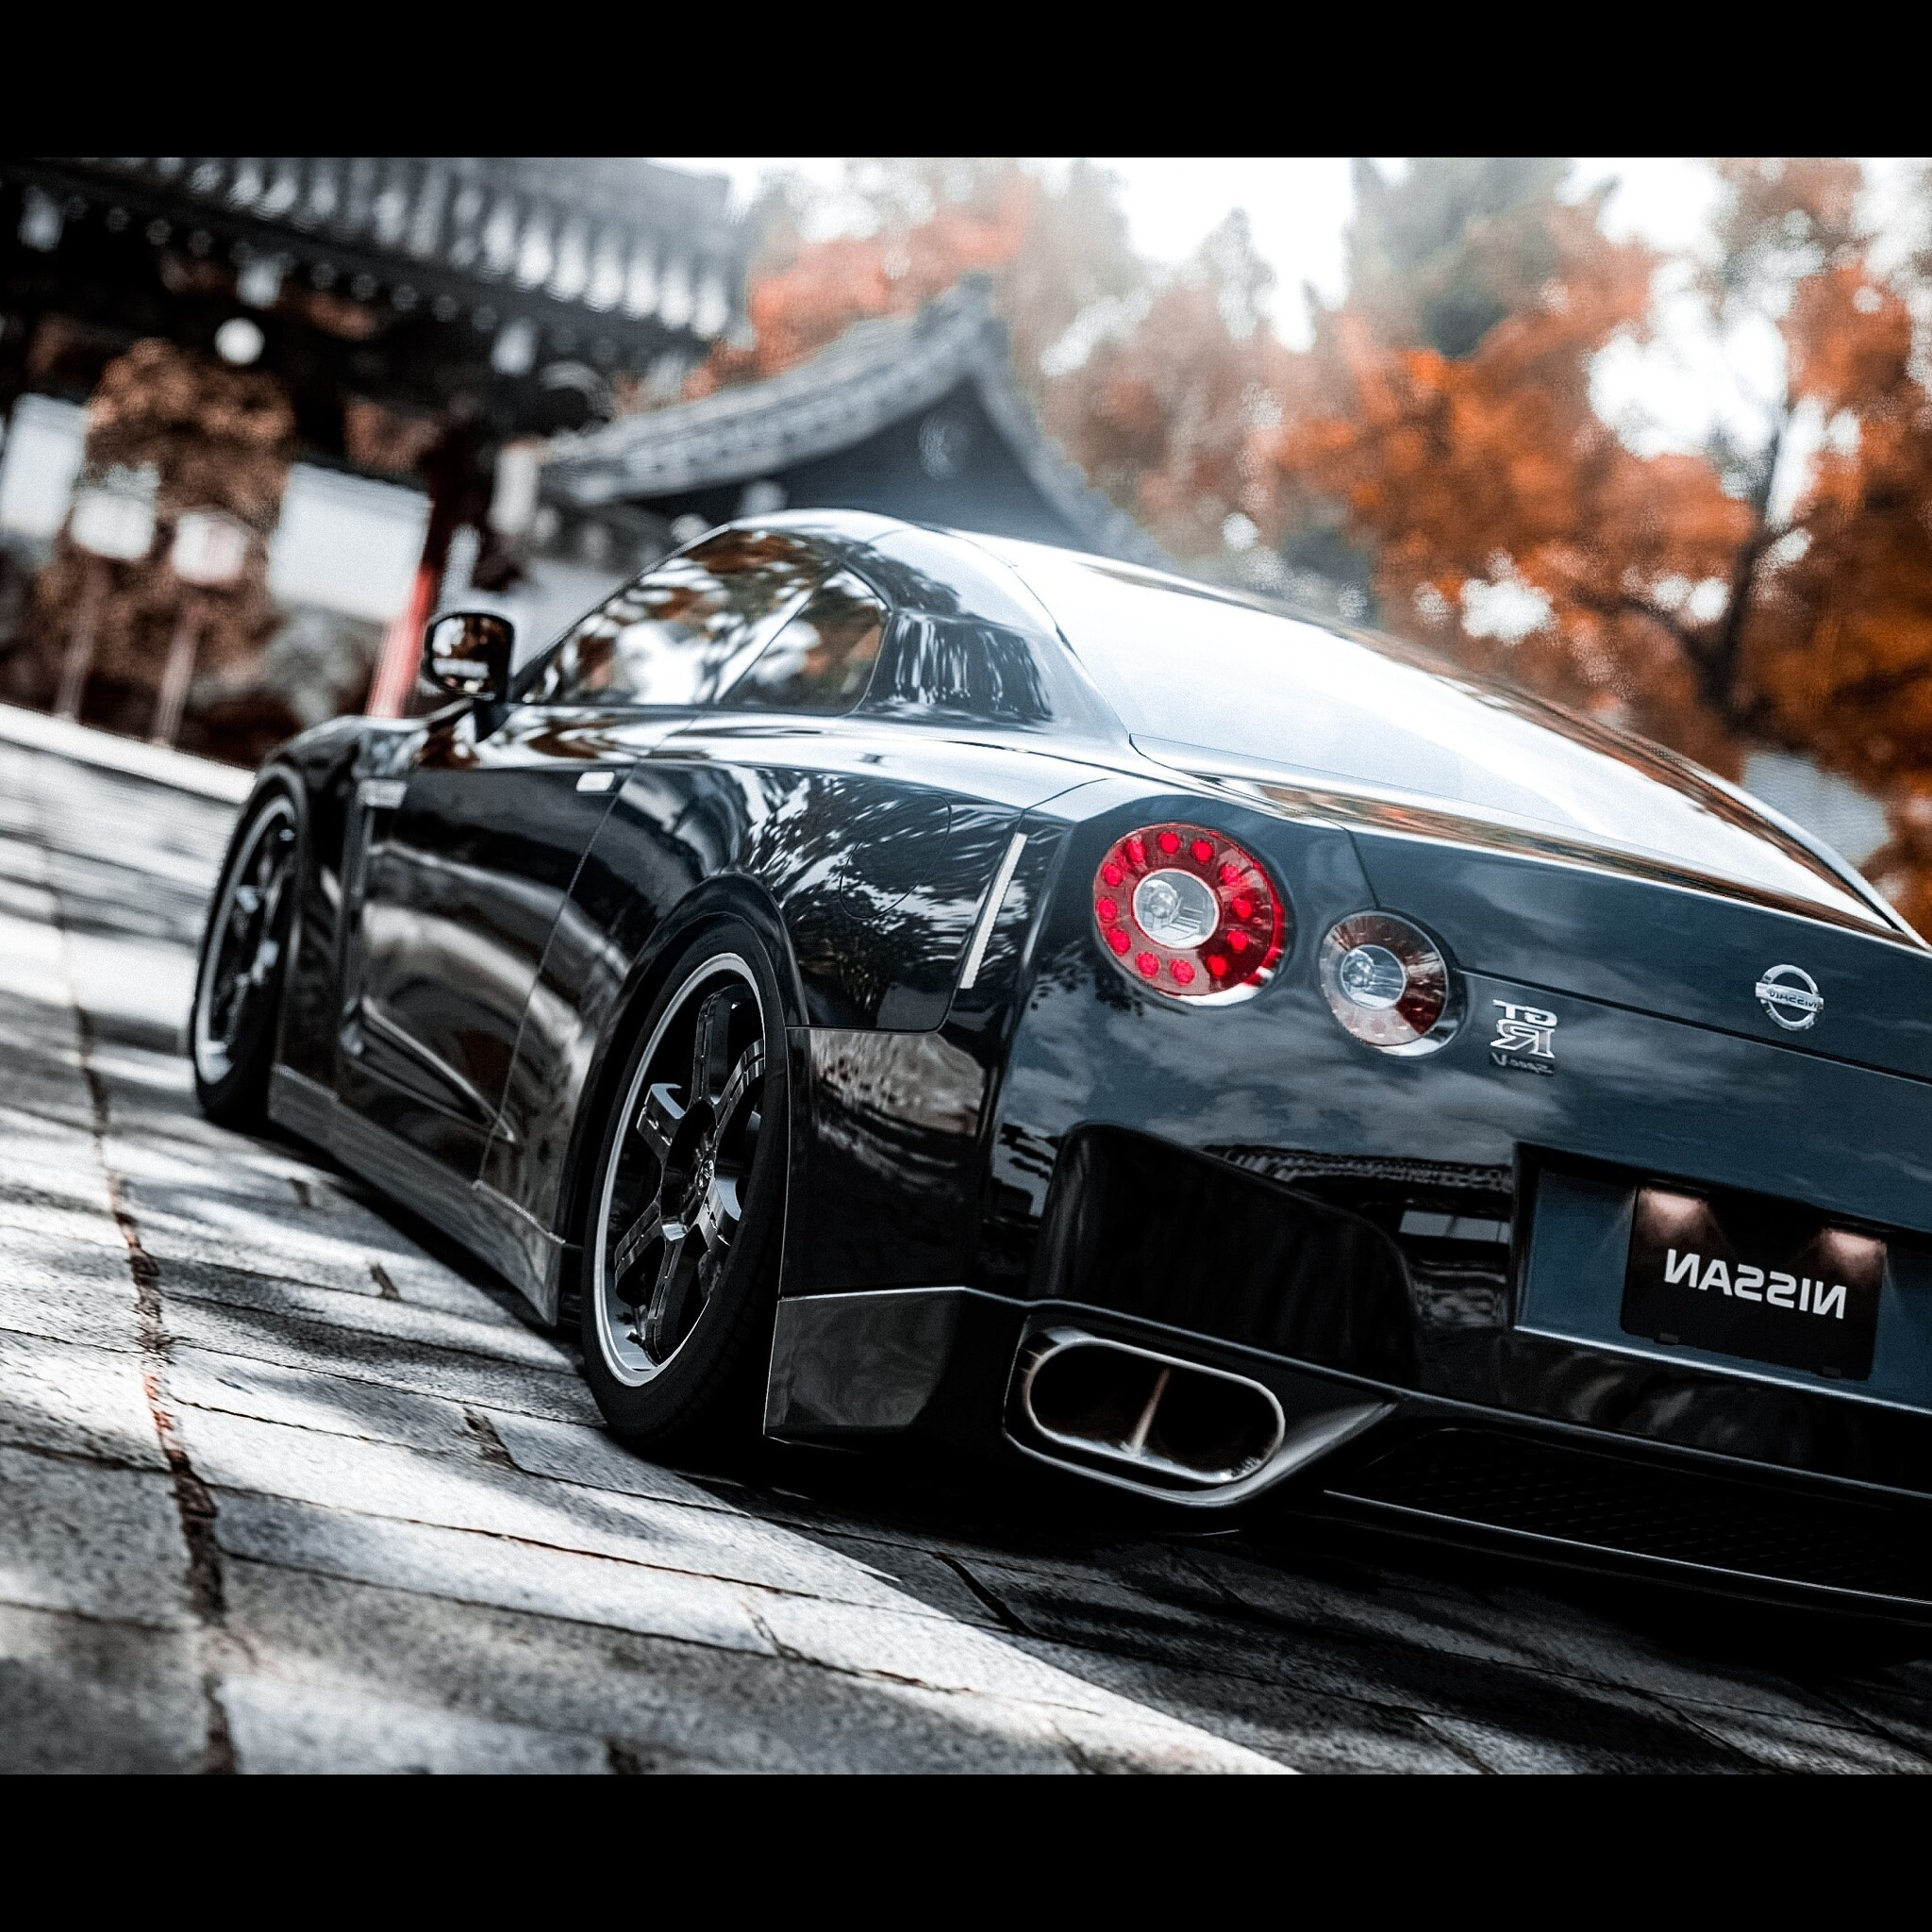 Nissan Gtr Ipad Wallpaper: 2048x2048 Nissan GTR 2 Ipad Air HD 4k Wallpapers, Images